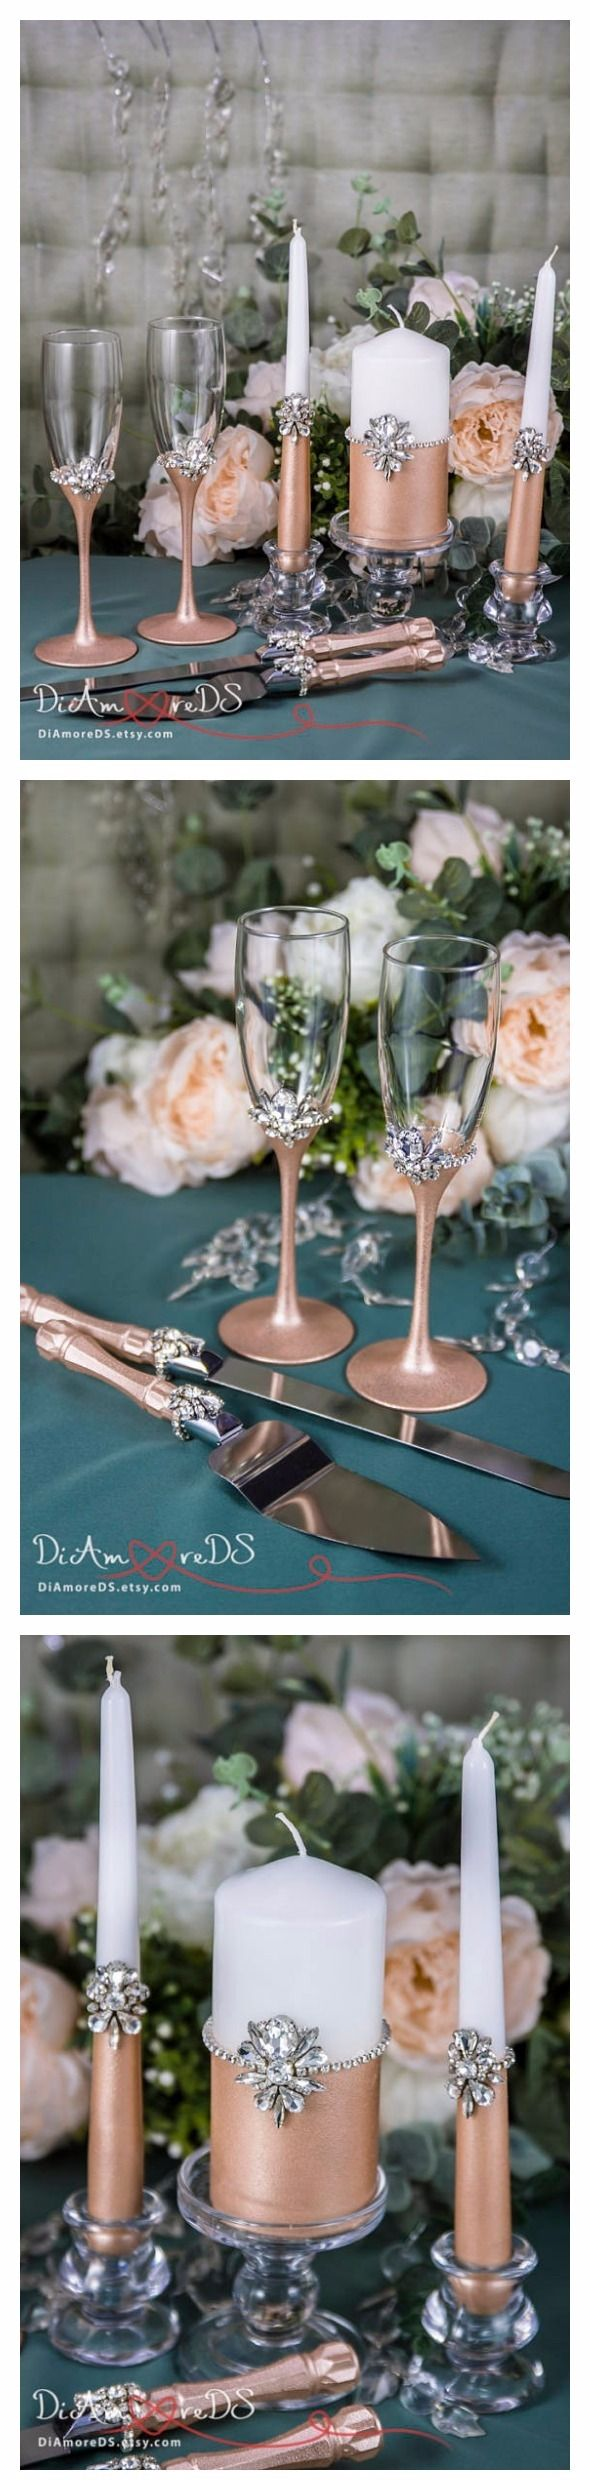 Best 75 Rose Gold Wedding Images On Pinterest Blush Gold Weddings